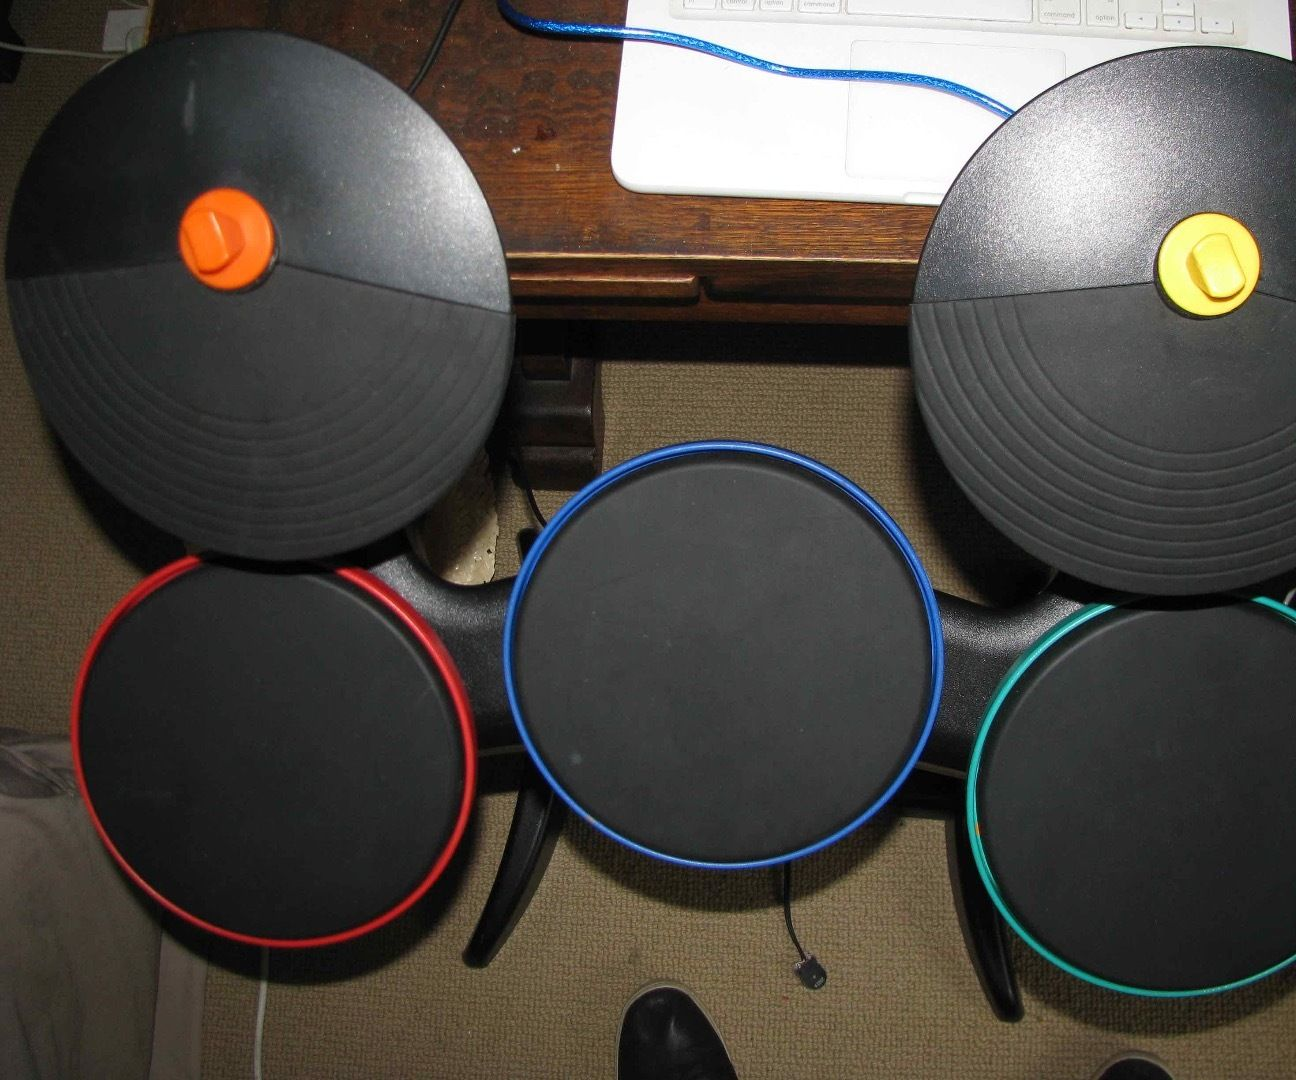 Standalone Electronic Drumkit From Wii Band Hero Kit